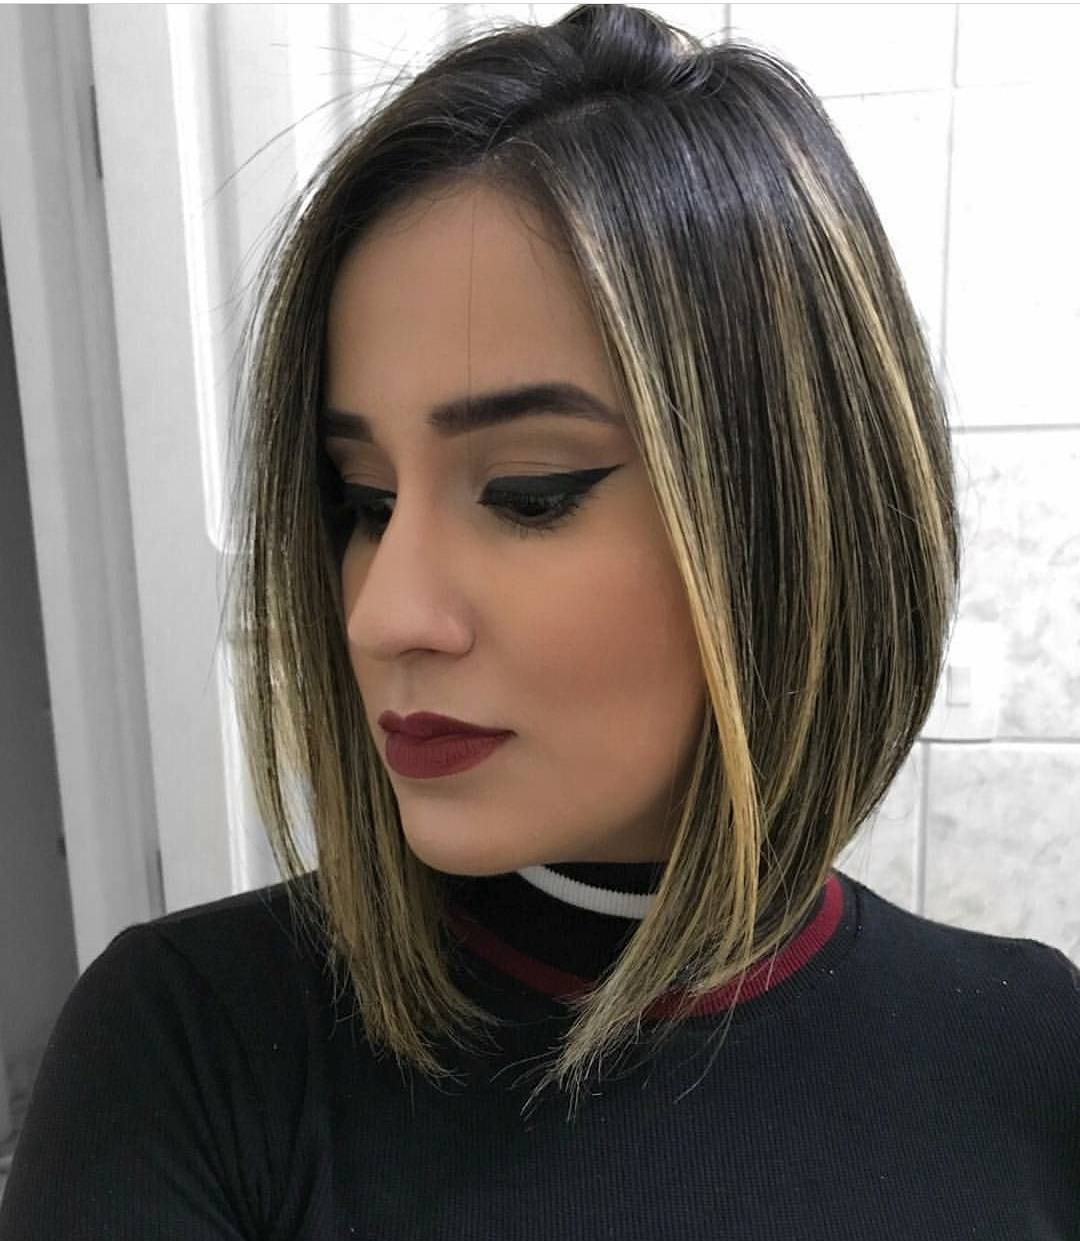 Chic Medium Bob Haircut for Women, Shoulder Length Bob Hairstyle Designs